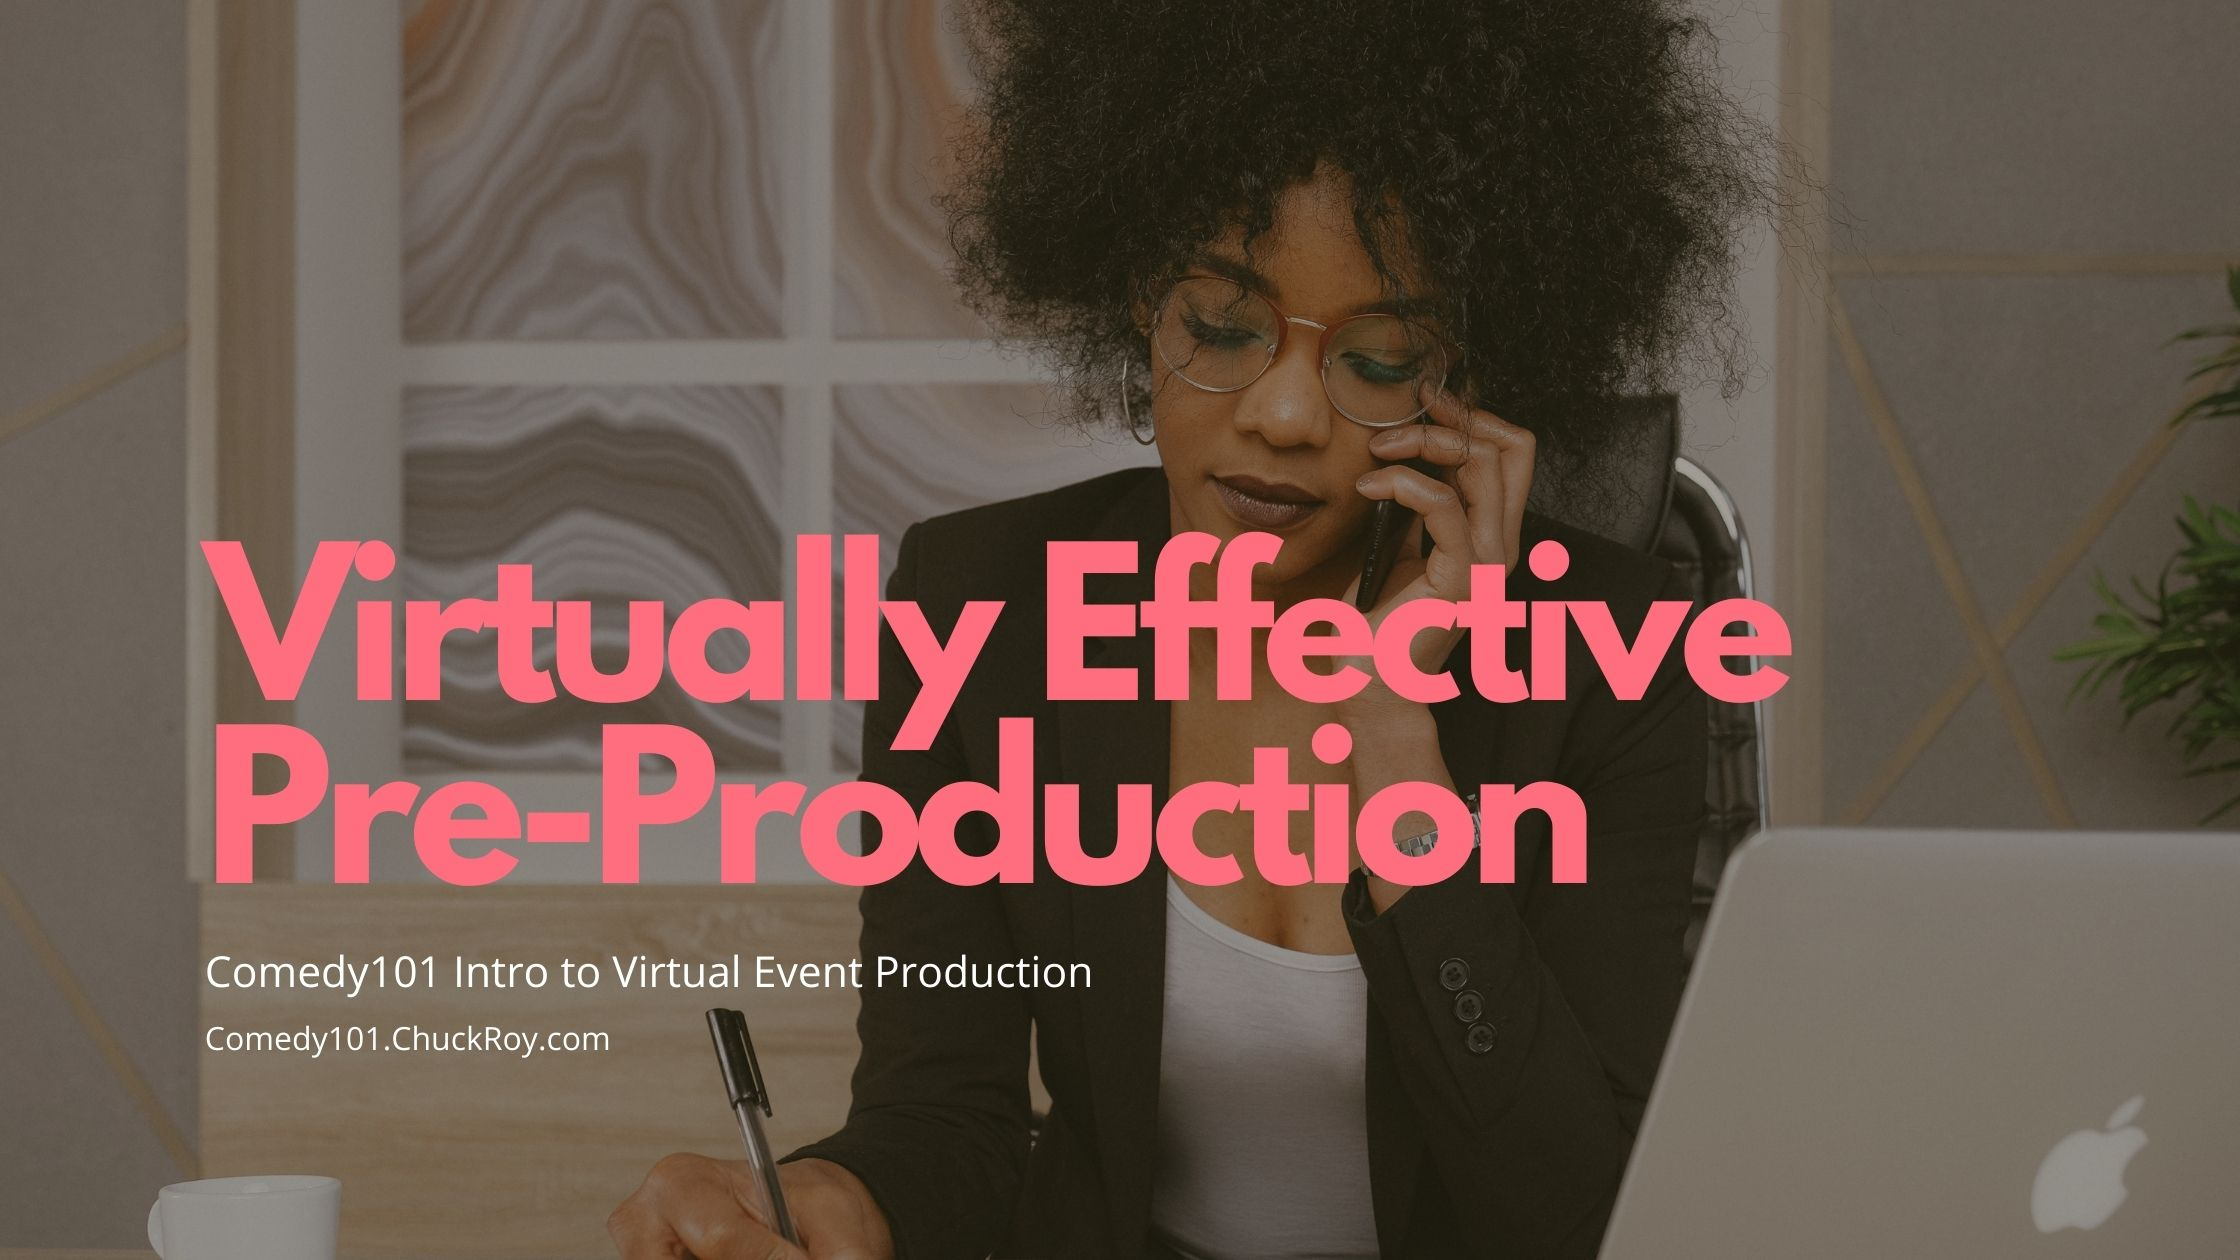 Virtually Effective Pre-Production (Part 2 of 5)